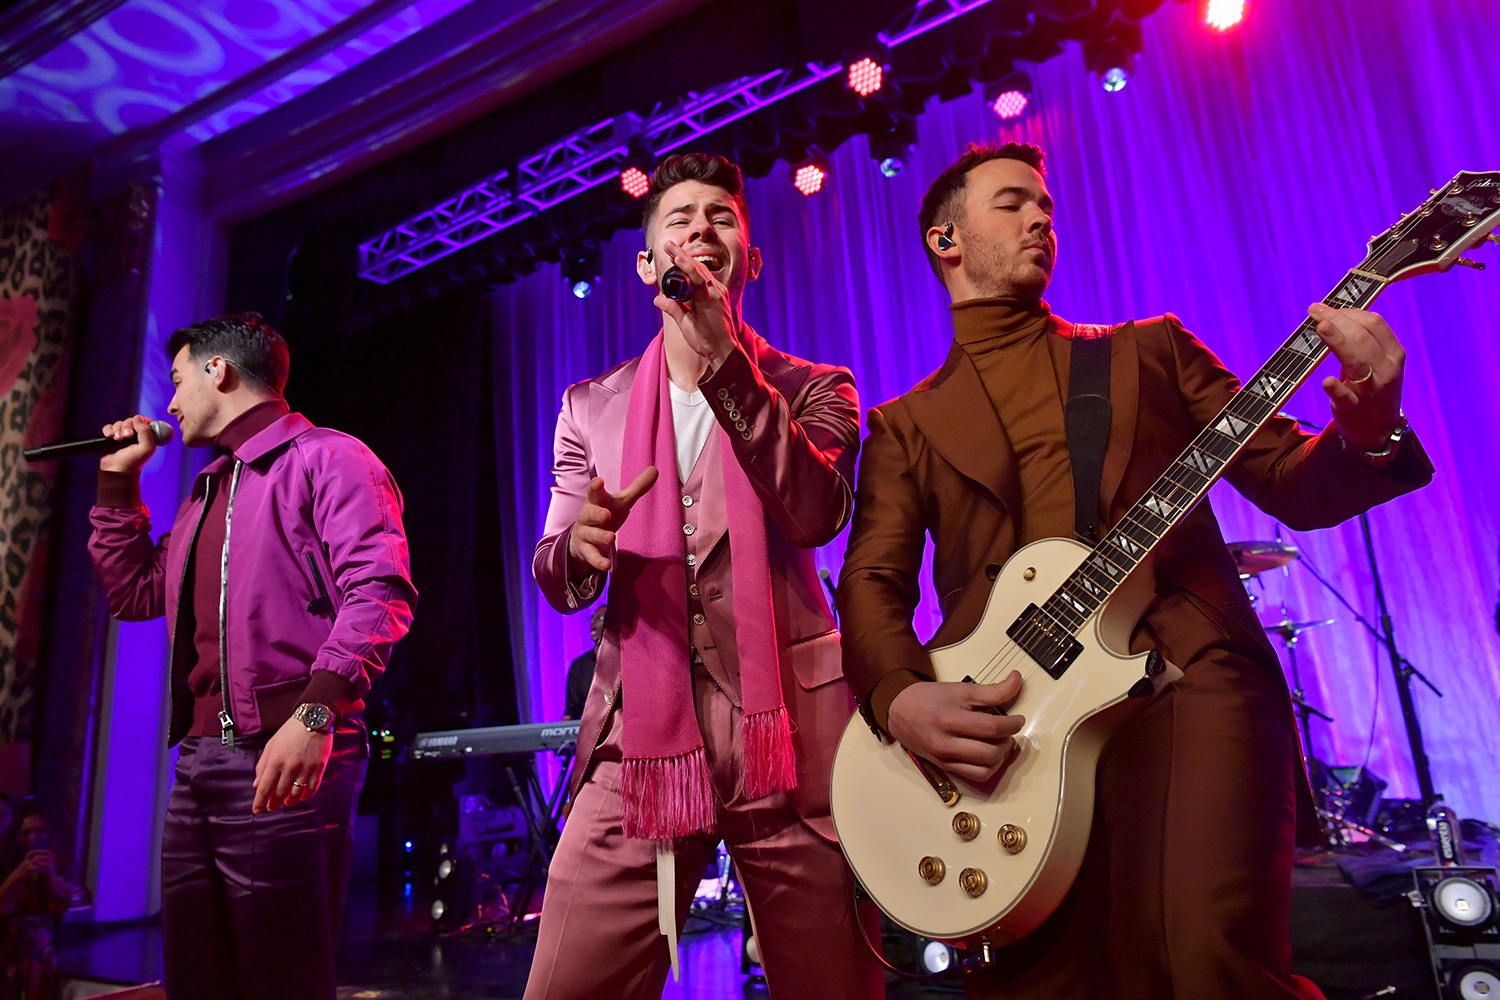 """Joe Jonas, Nick Jonas, and Kevin Jonas of The Jonas Brothers perform onstage during WCRF's """"An Unforgettable Evening"""" at Beverly Wilshire, A Four Seasons Hotel on February 27, 2020 in Beverly Hills, California"""